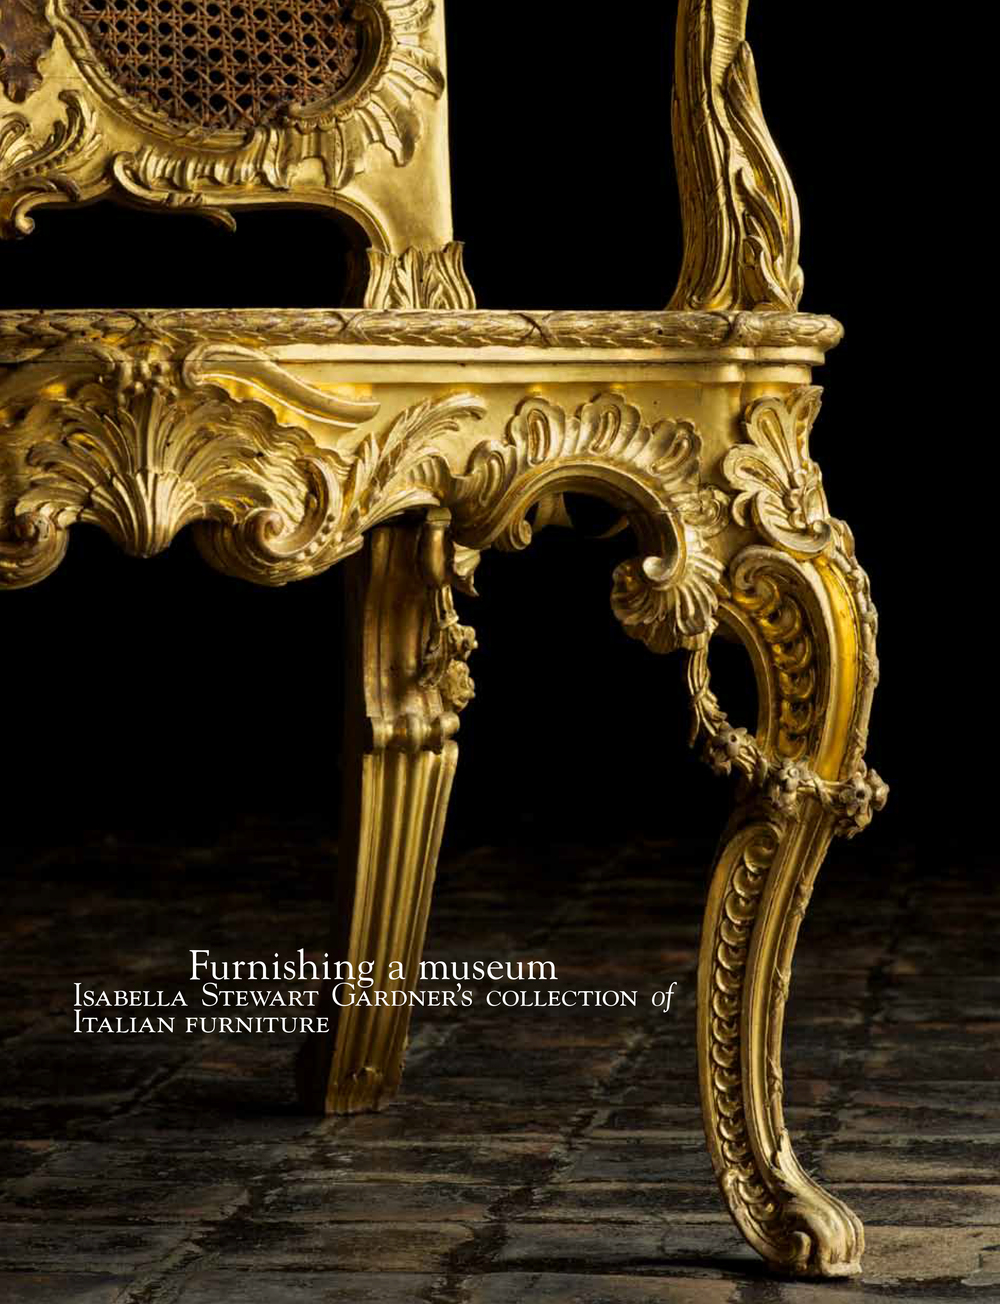 Furnishing a museum isabella stewart gardners collection of italian furniture general working group